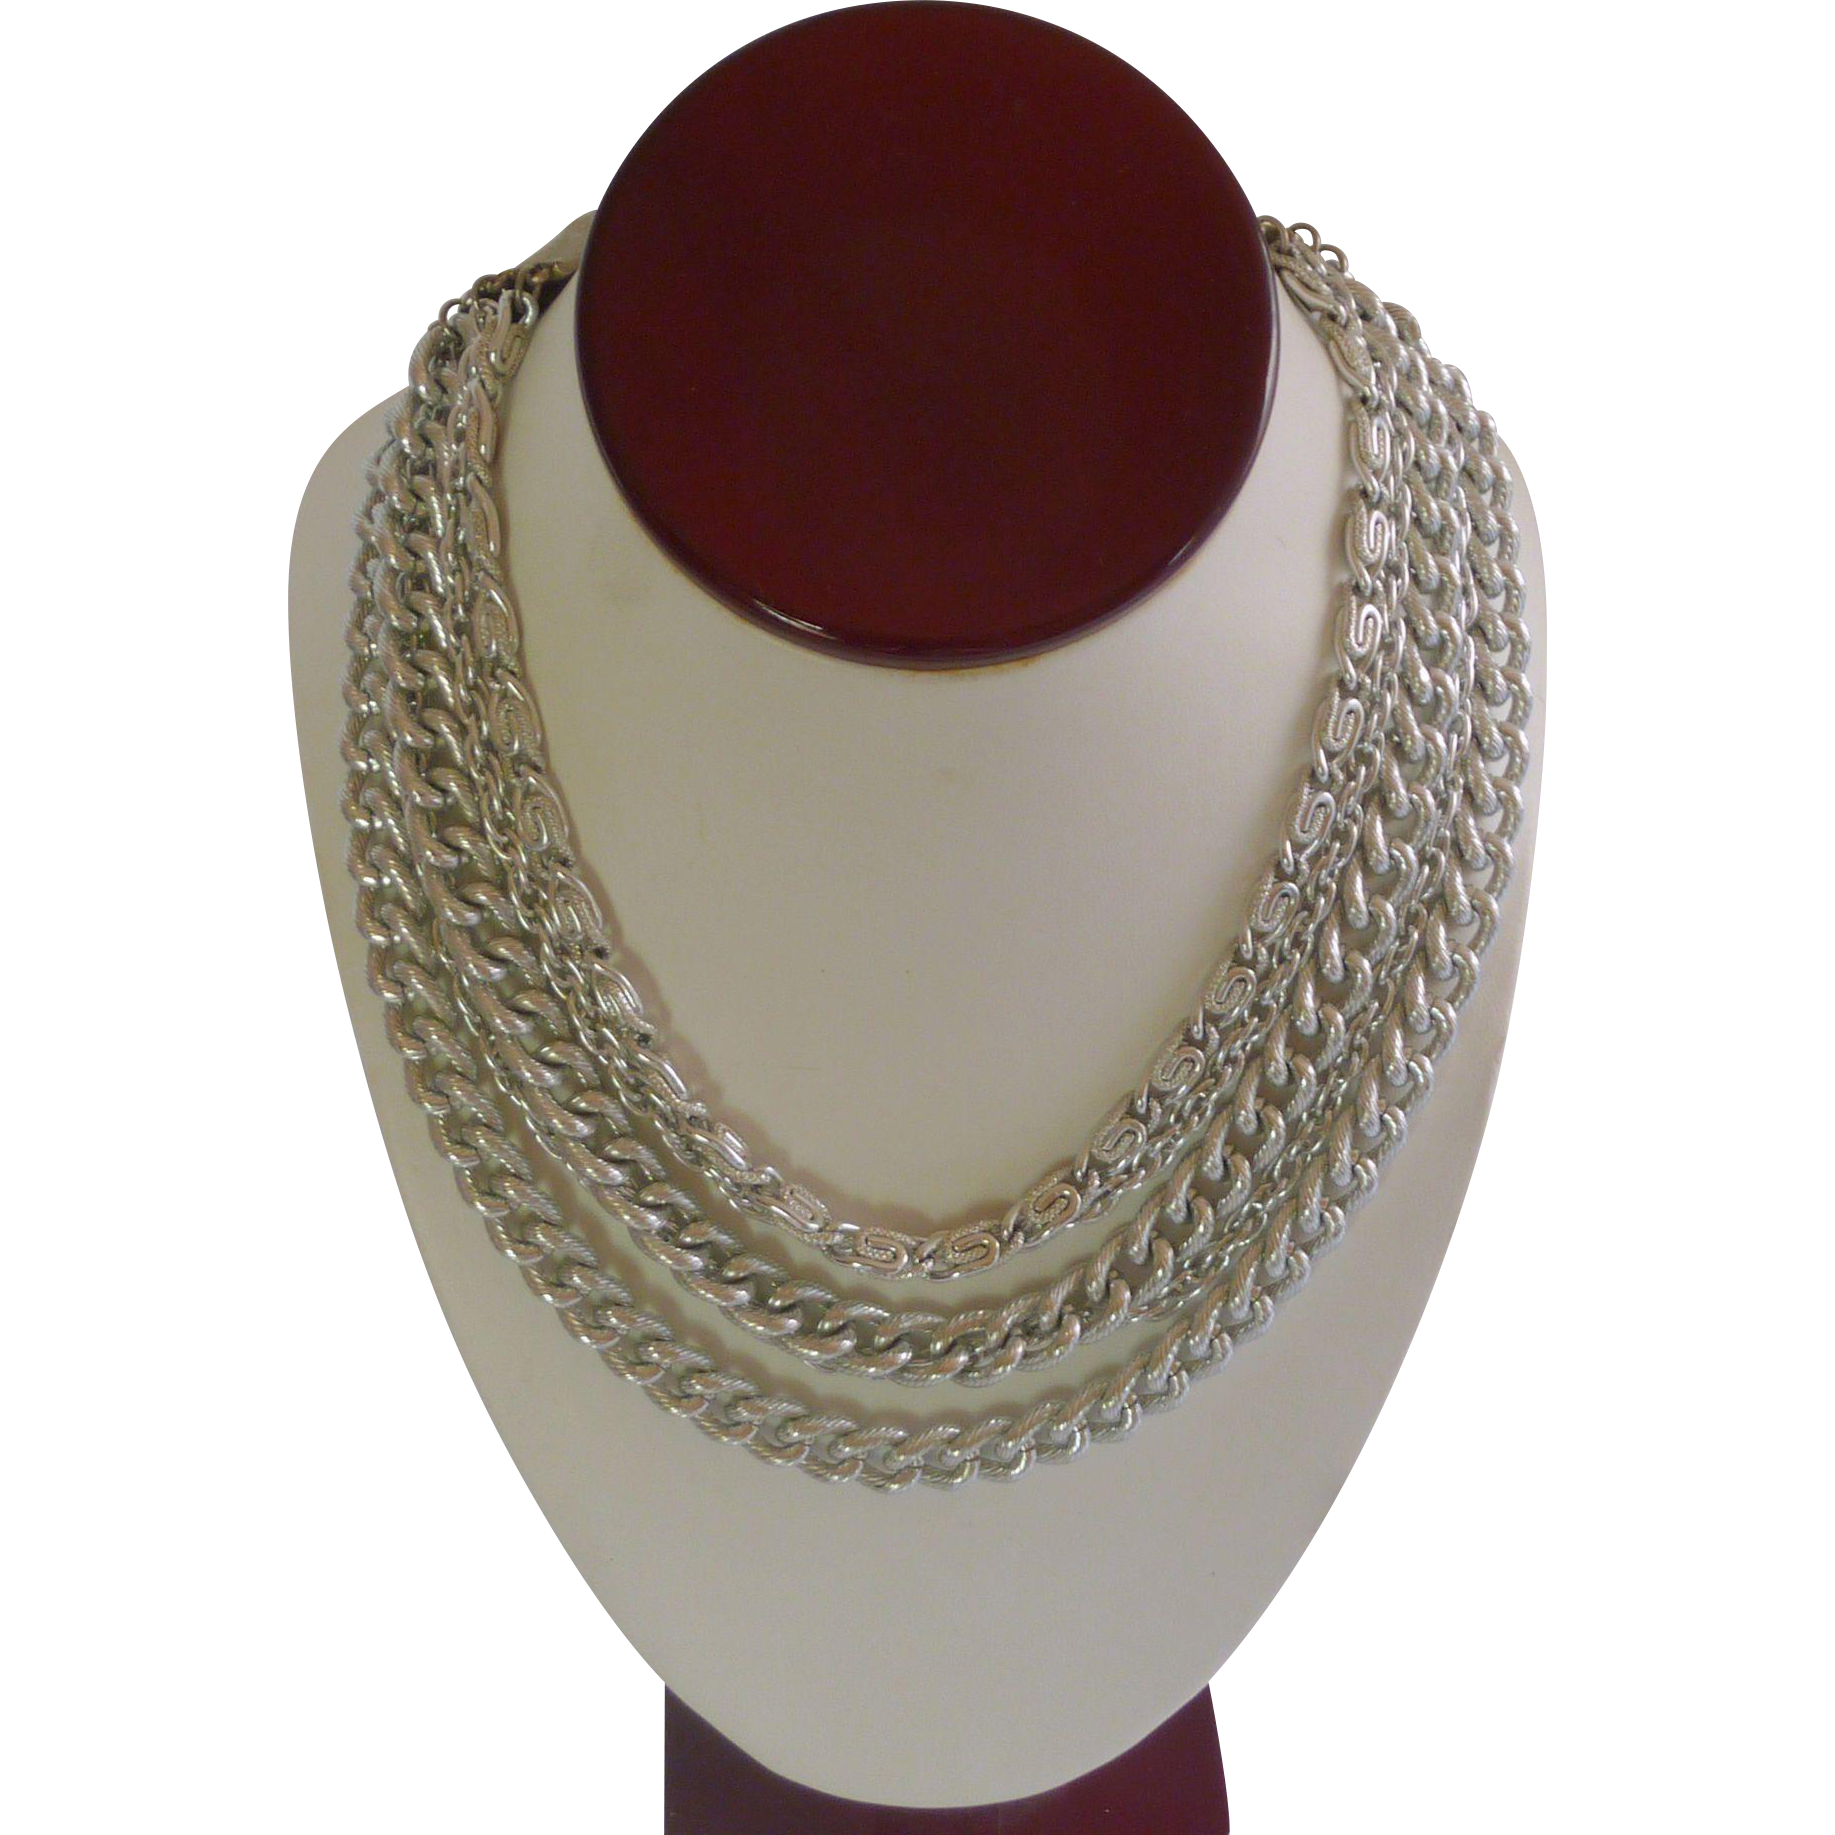 Silvered Toned Five Strand Chain Necklace